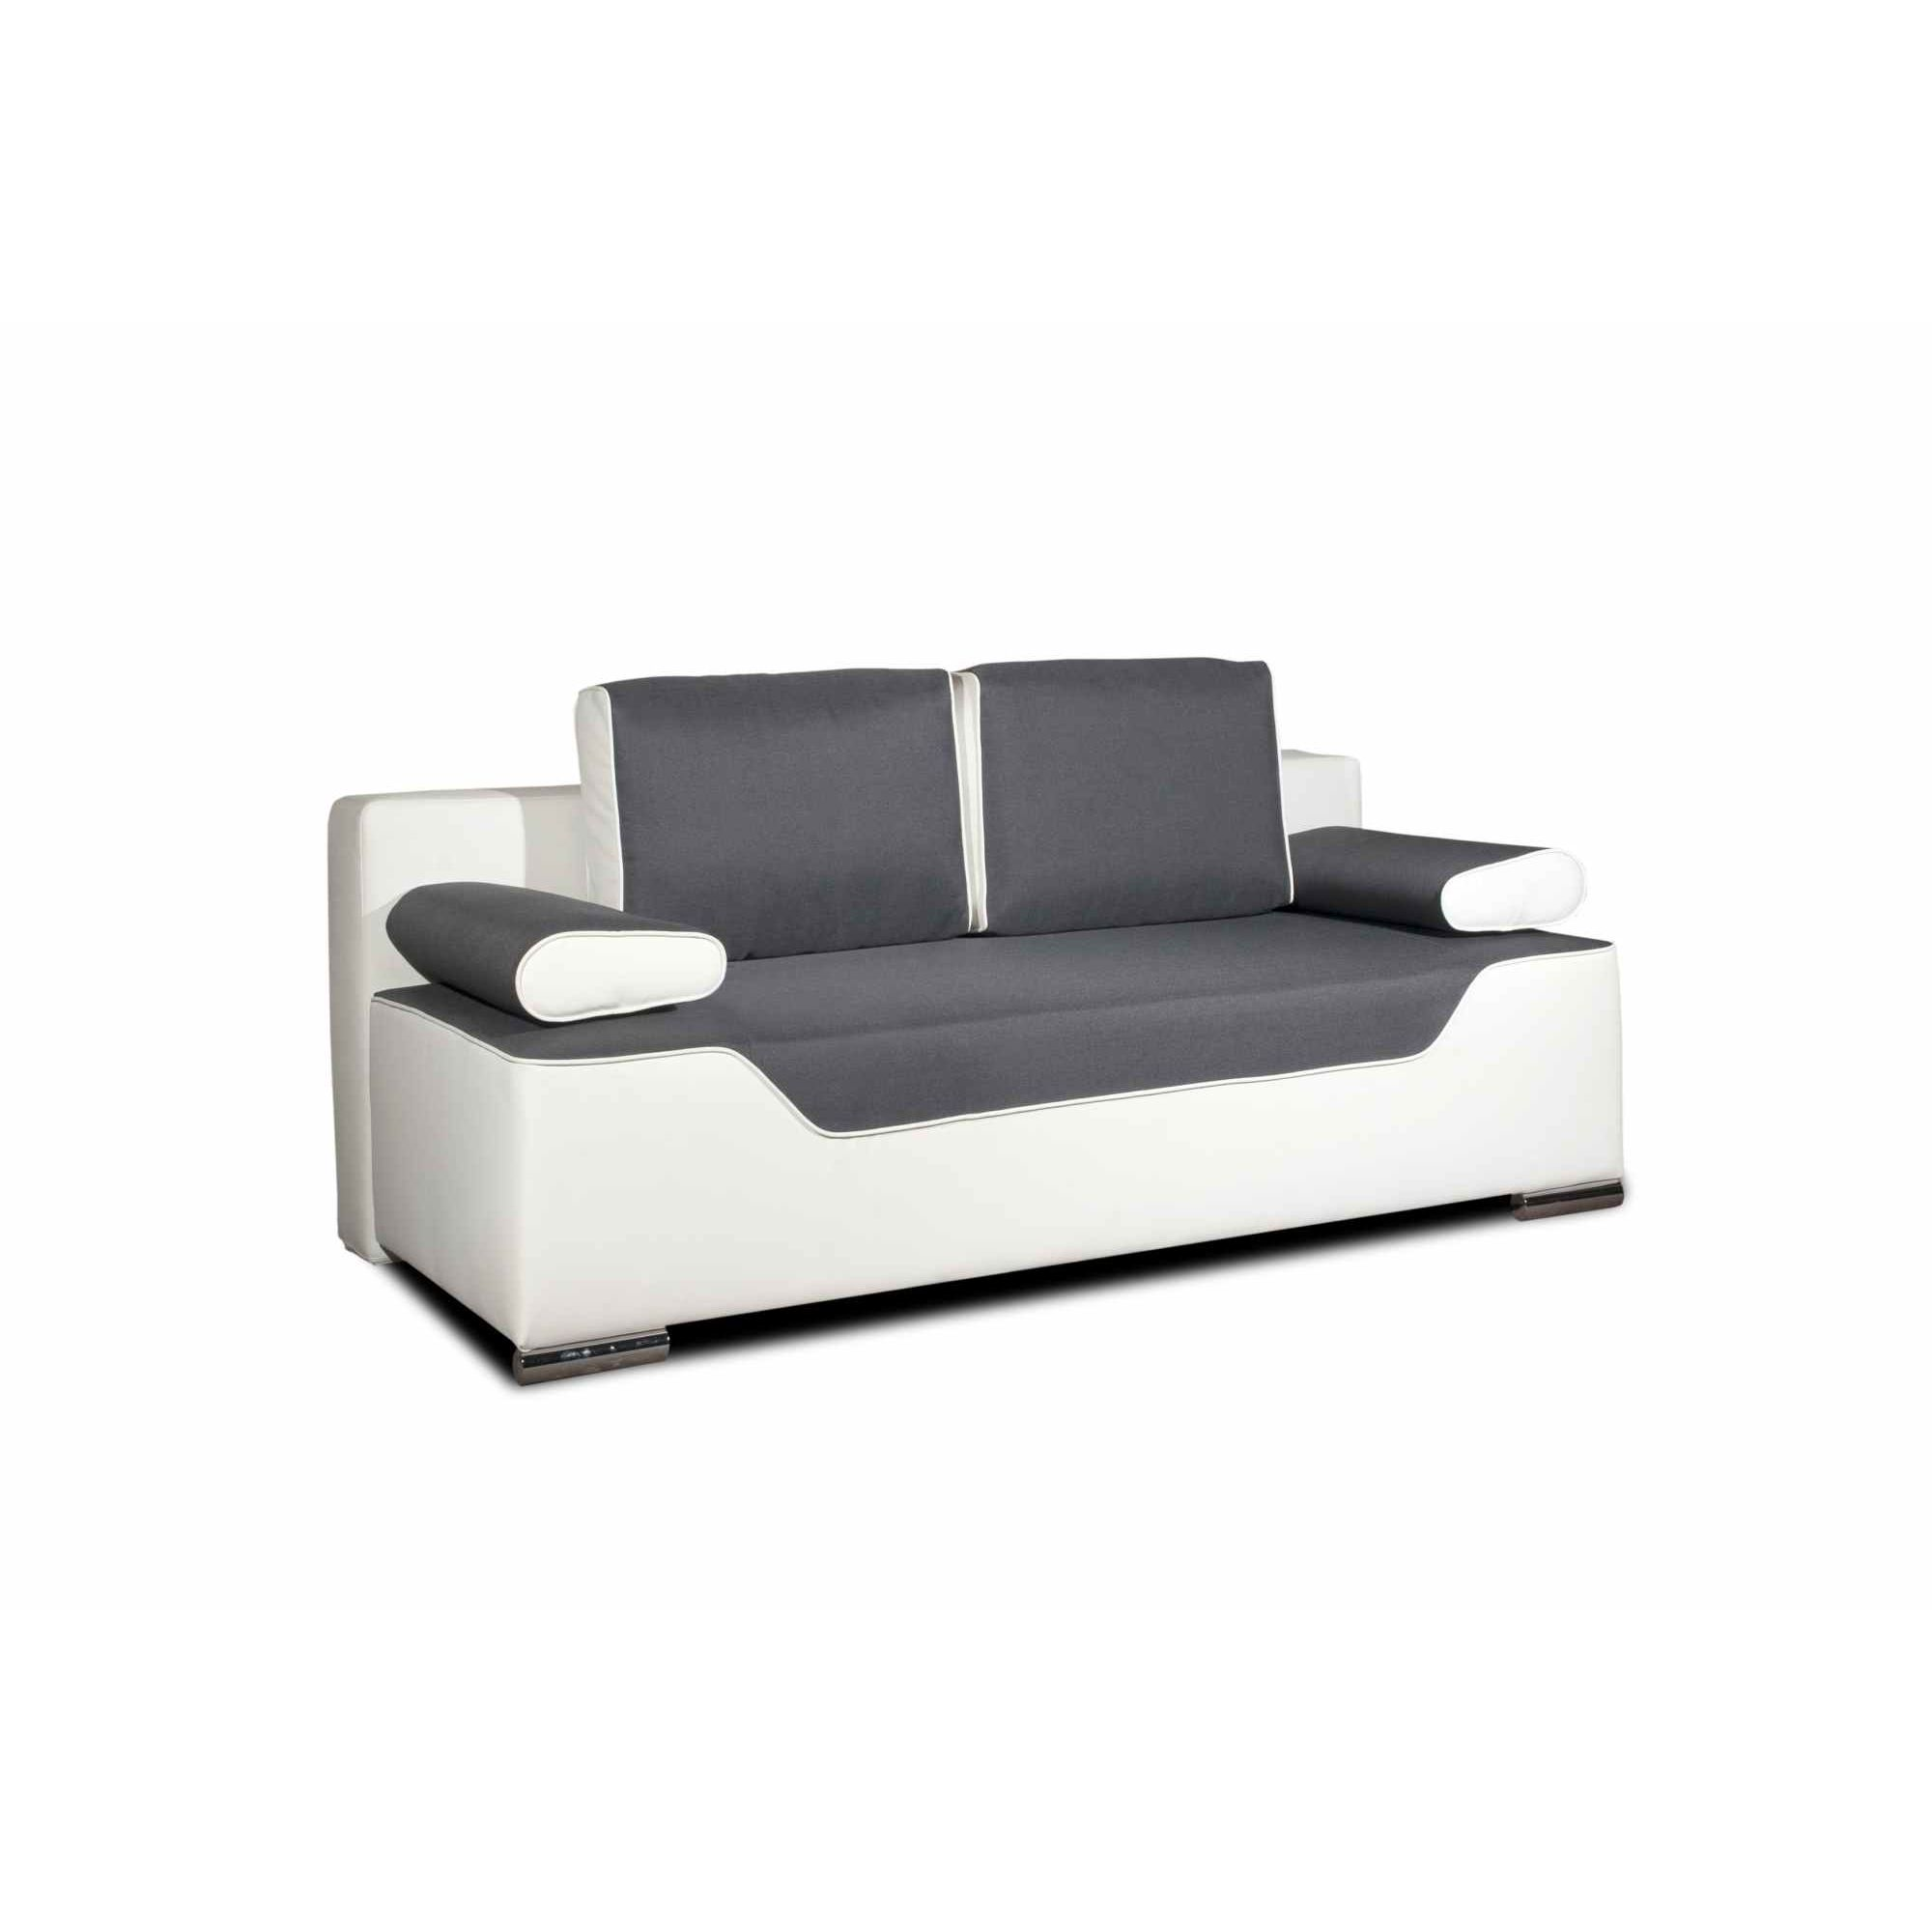 Deco in paris canape 3 places convertible gris et blanc Canape 3 places gris